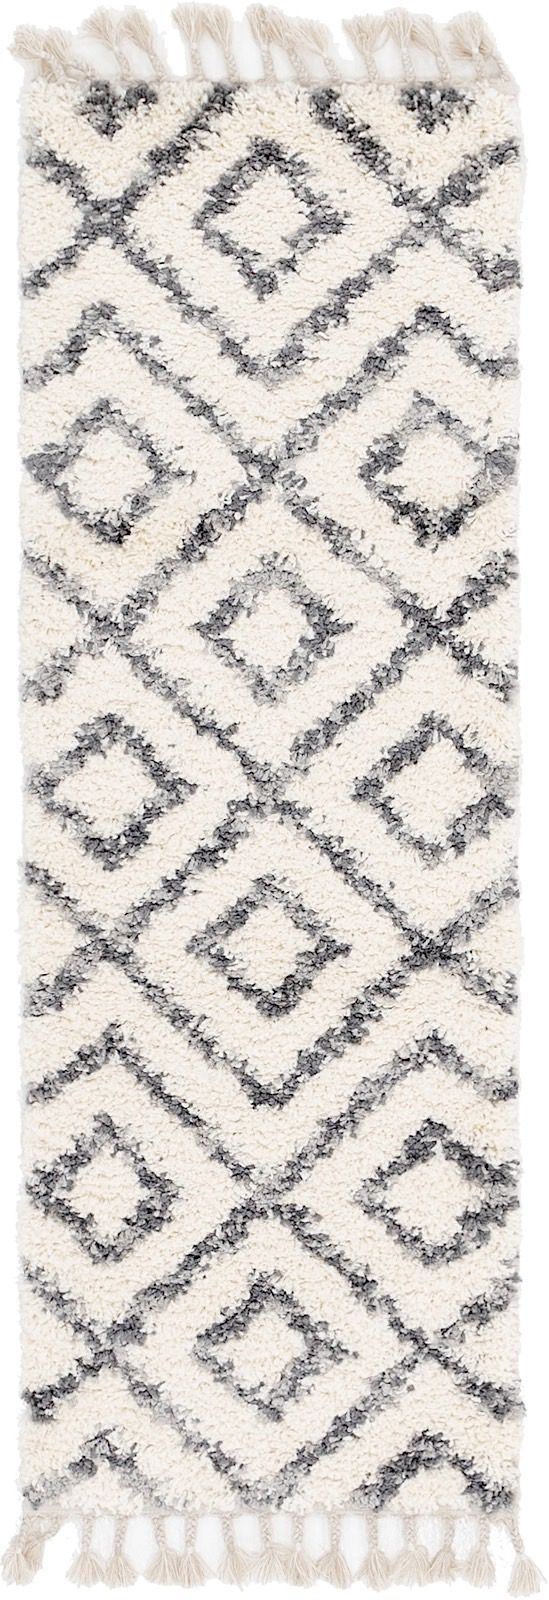 unique loom hygge shag shag area rug collection